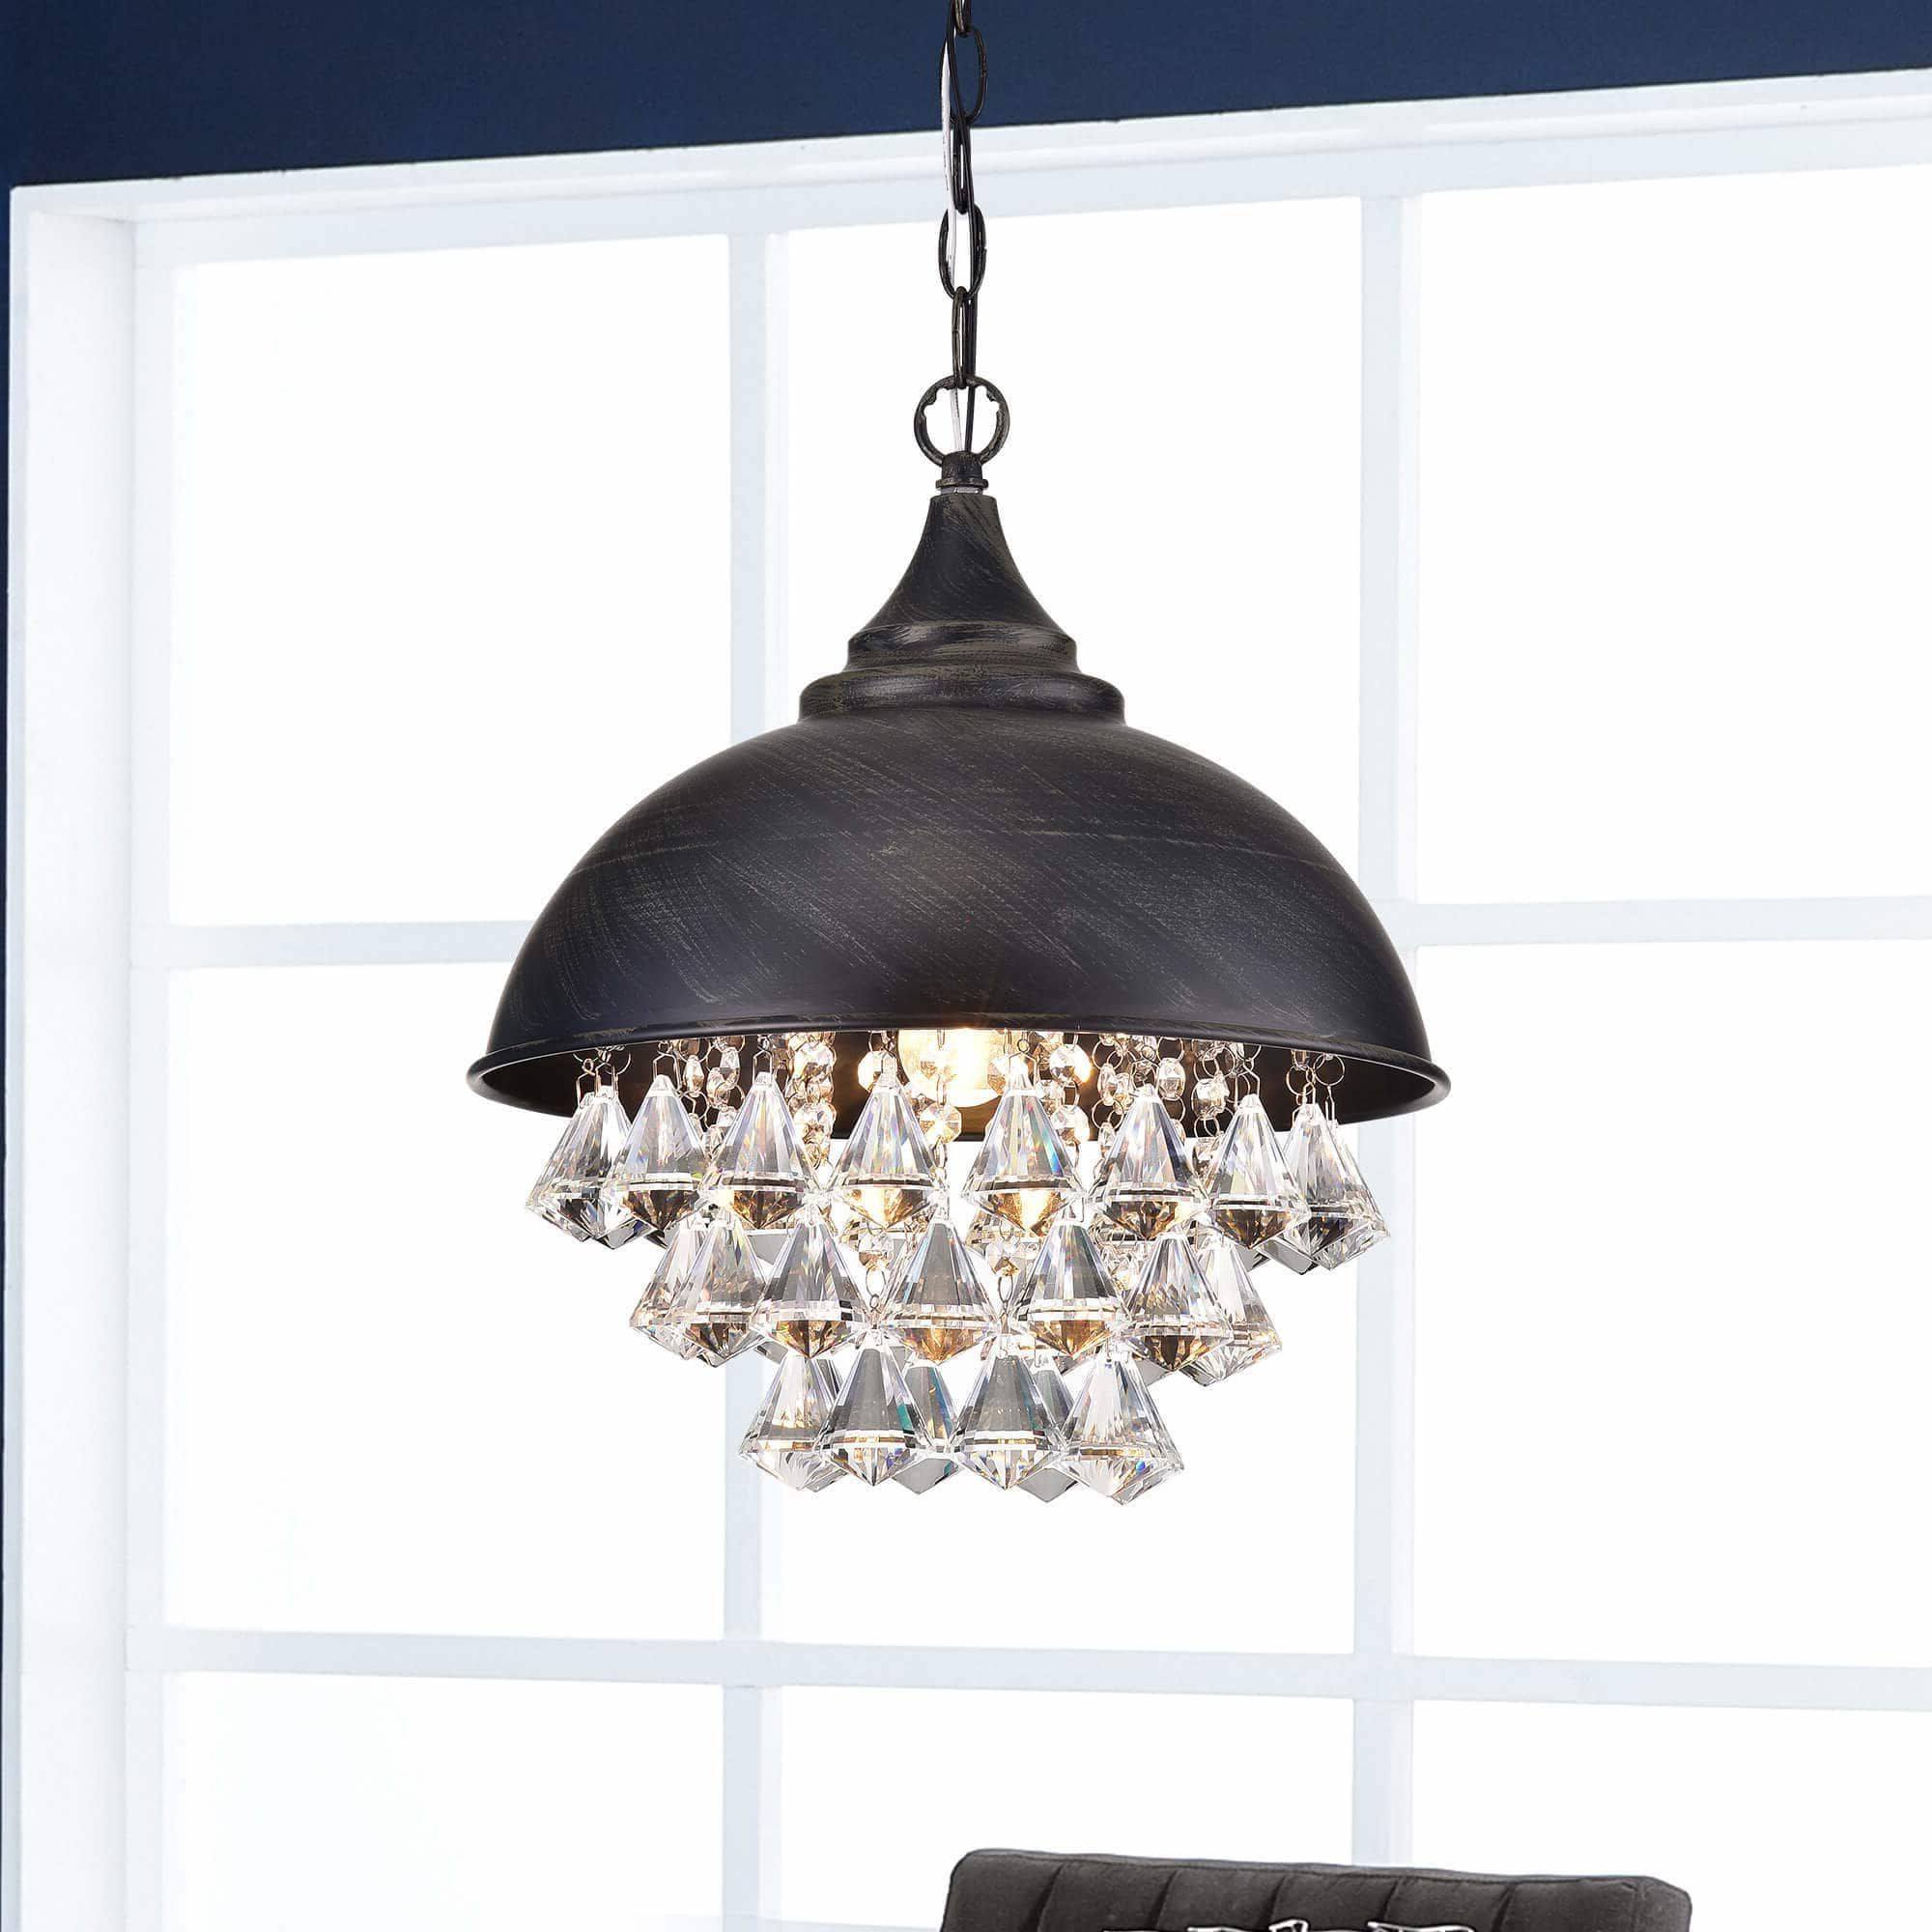 Best And Newest Visalia Antique Black Single Light Crystal Chandelier Intended For Monadnock 1 Light Single Dome Pendants (View 18 of 25)